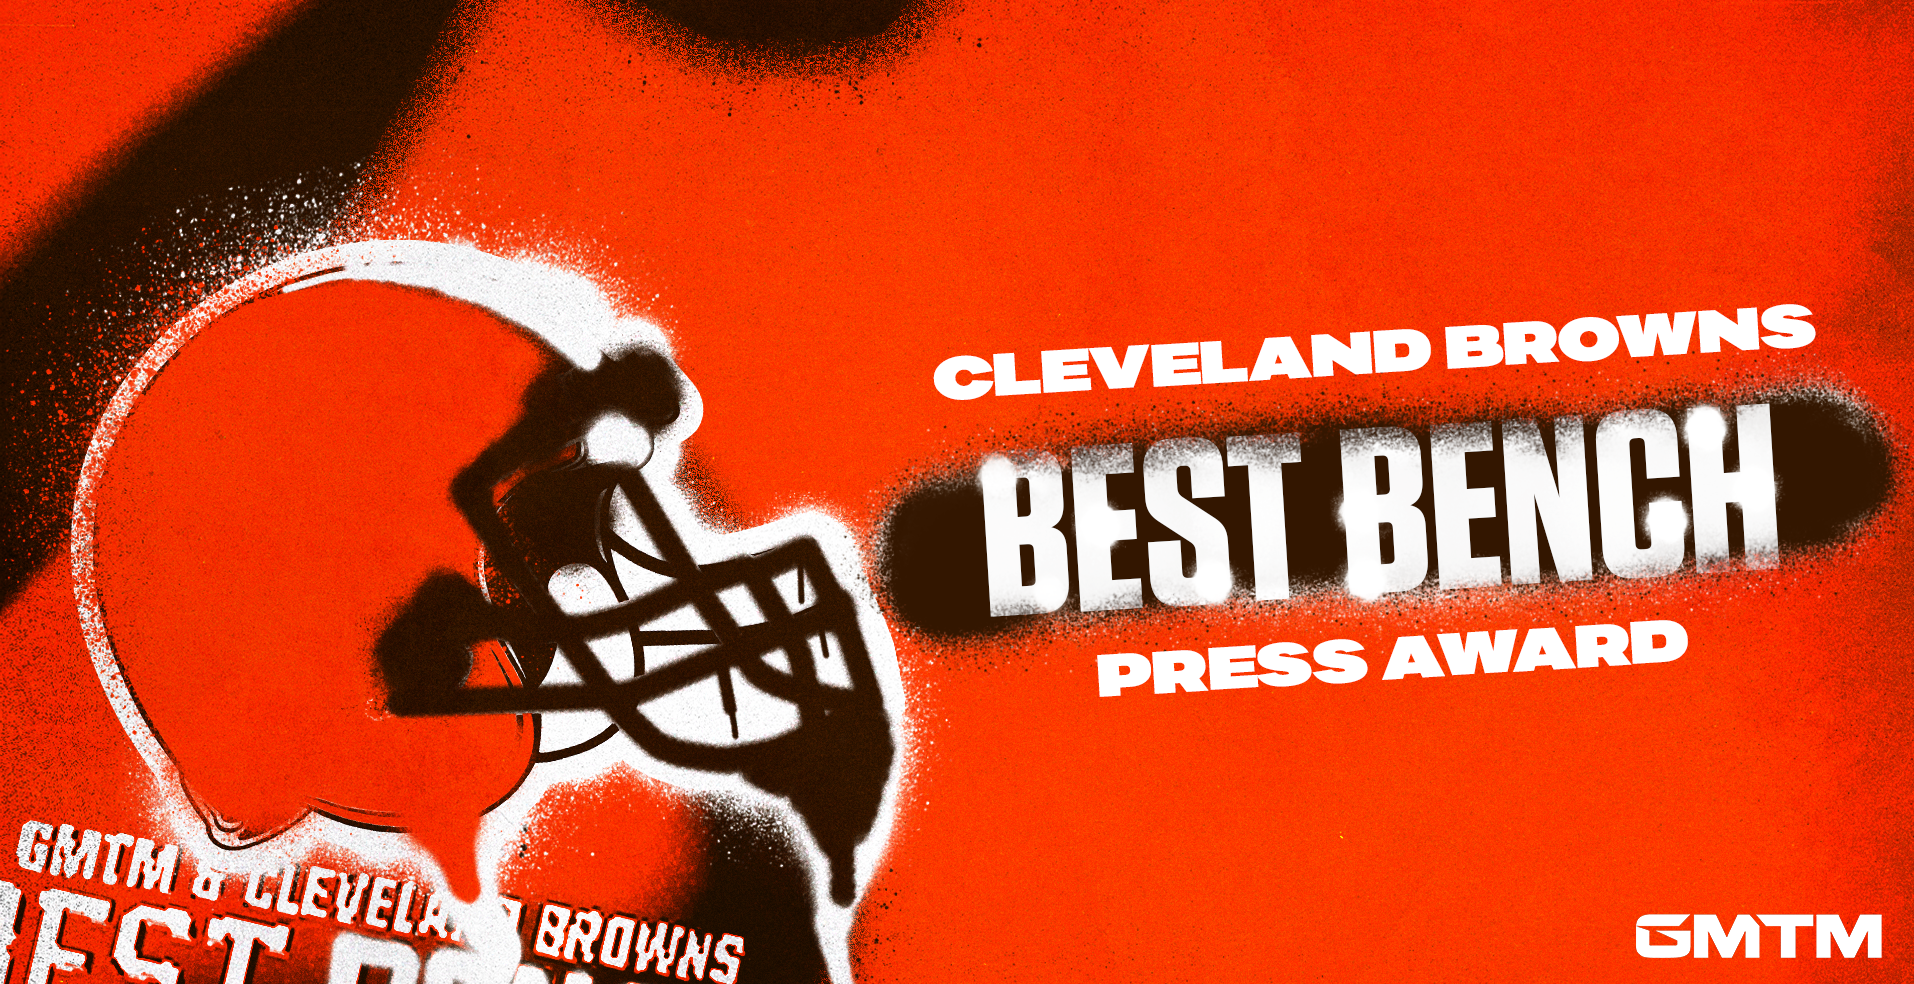 Cleveland Browns Looking For 'Best Bench Press' In High School Football